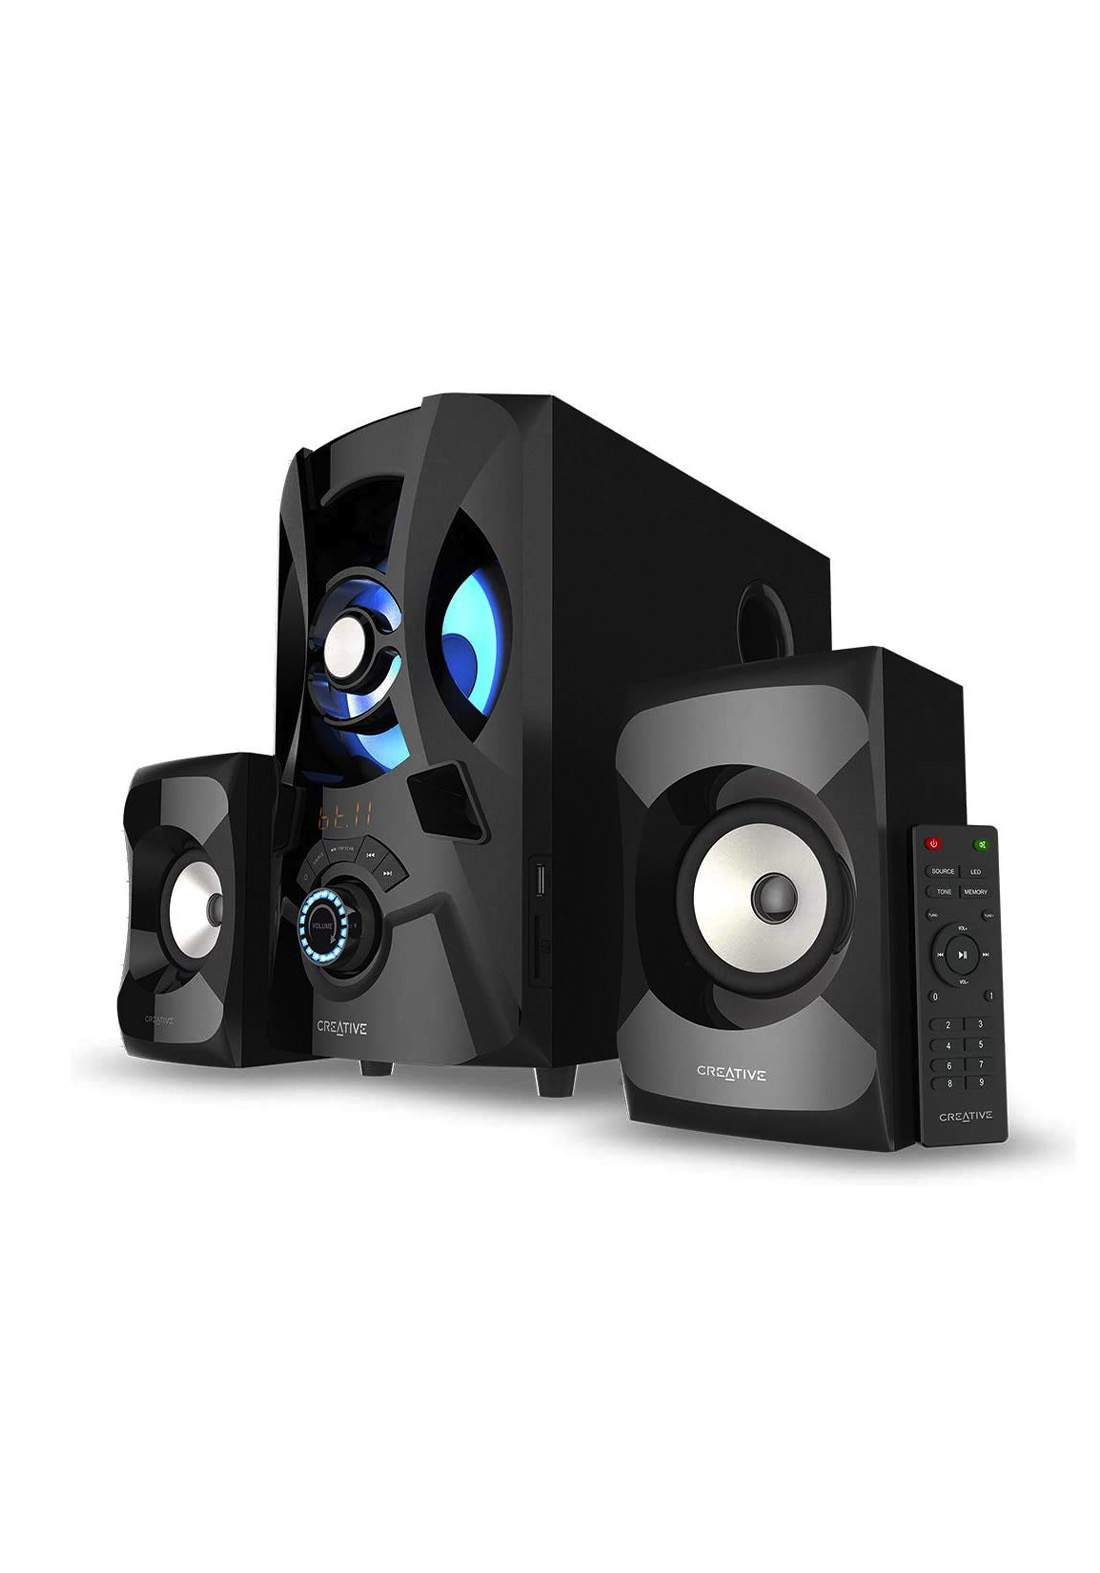 Creative SBS E2900 2.1 Powerful Bluetooth Speaker System with Subwoofer - Black مكبر صوت